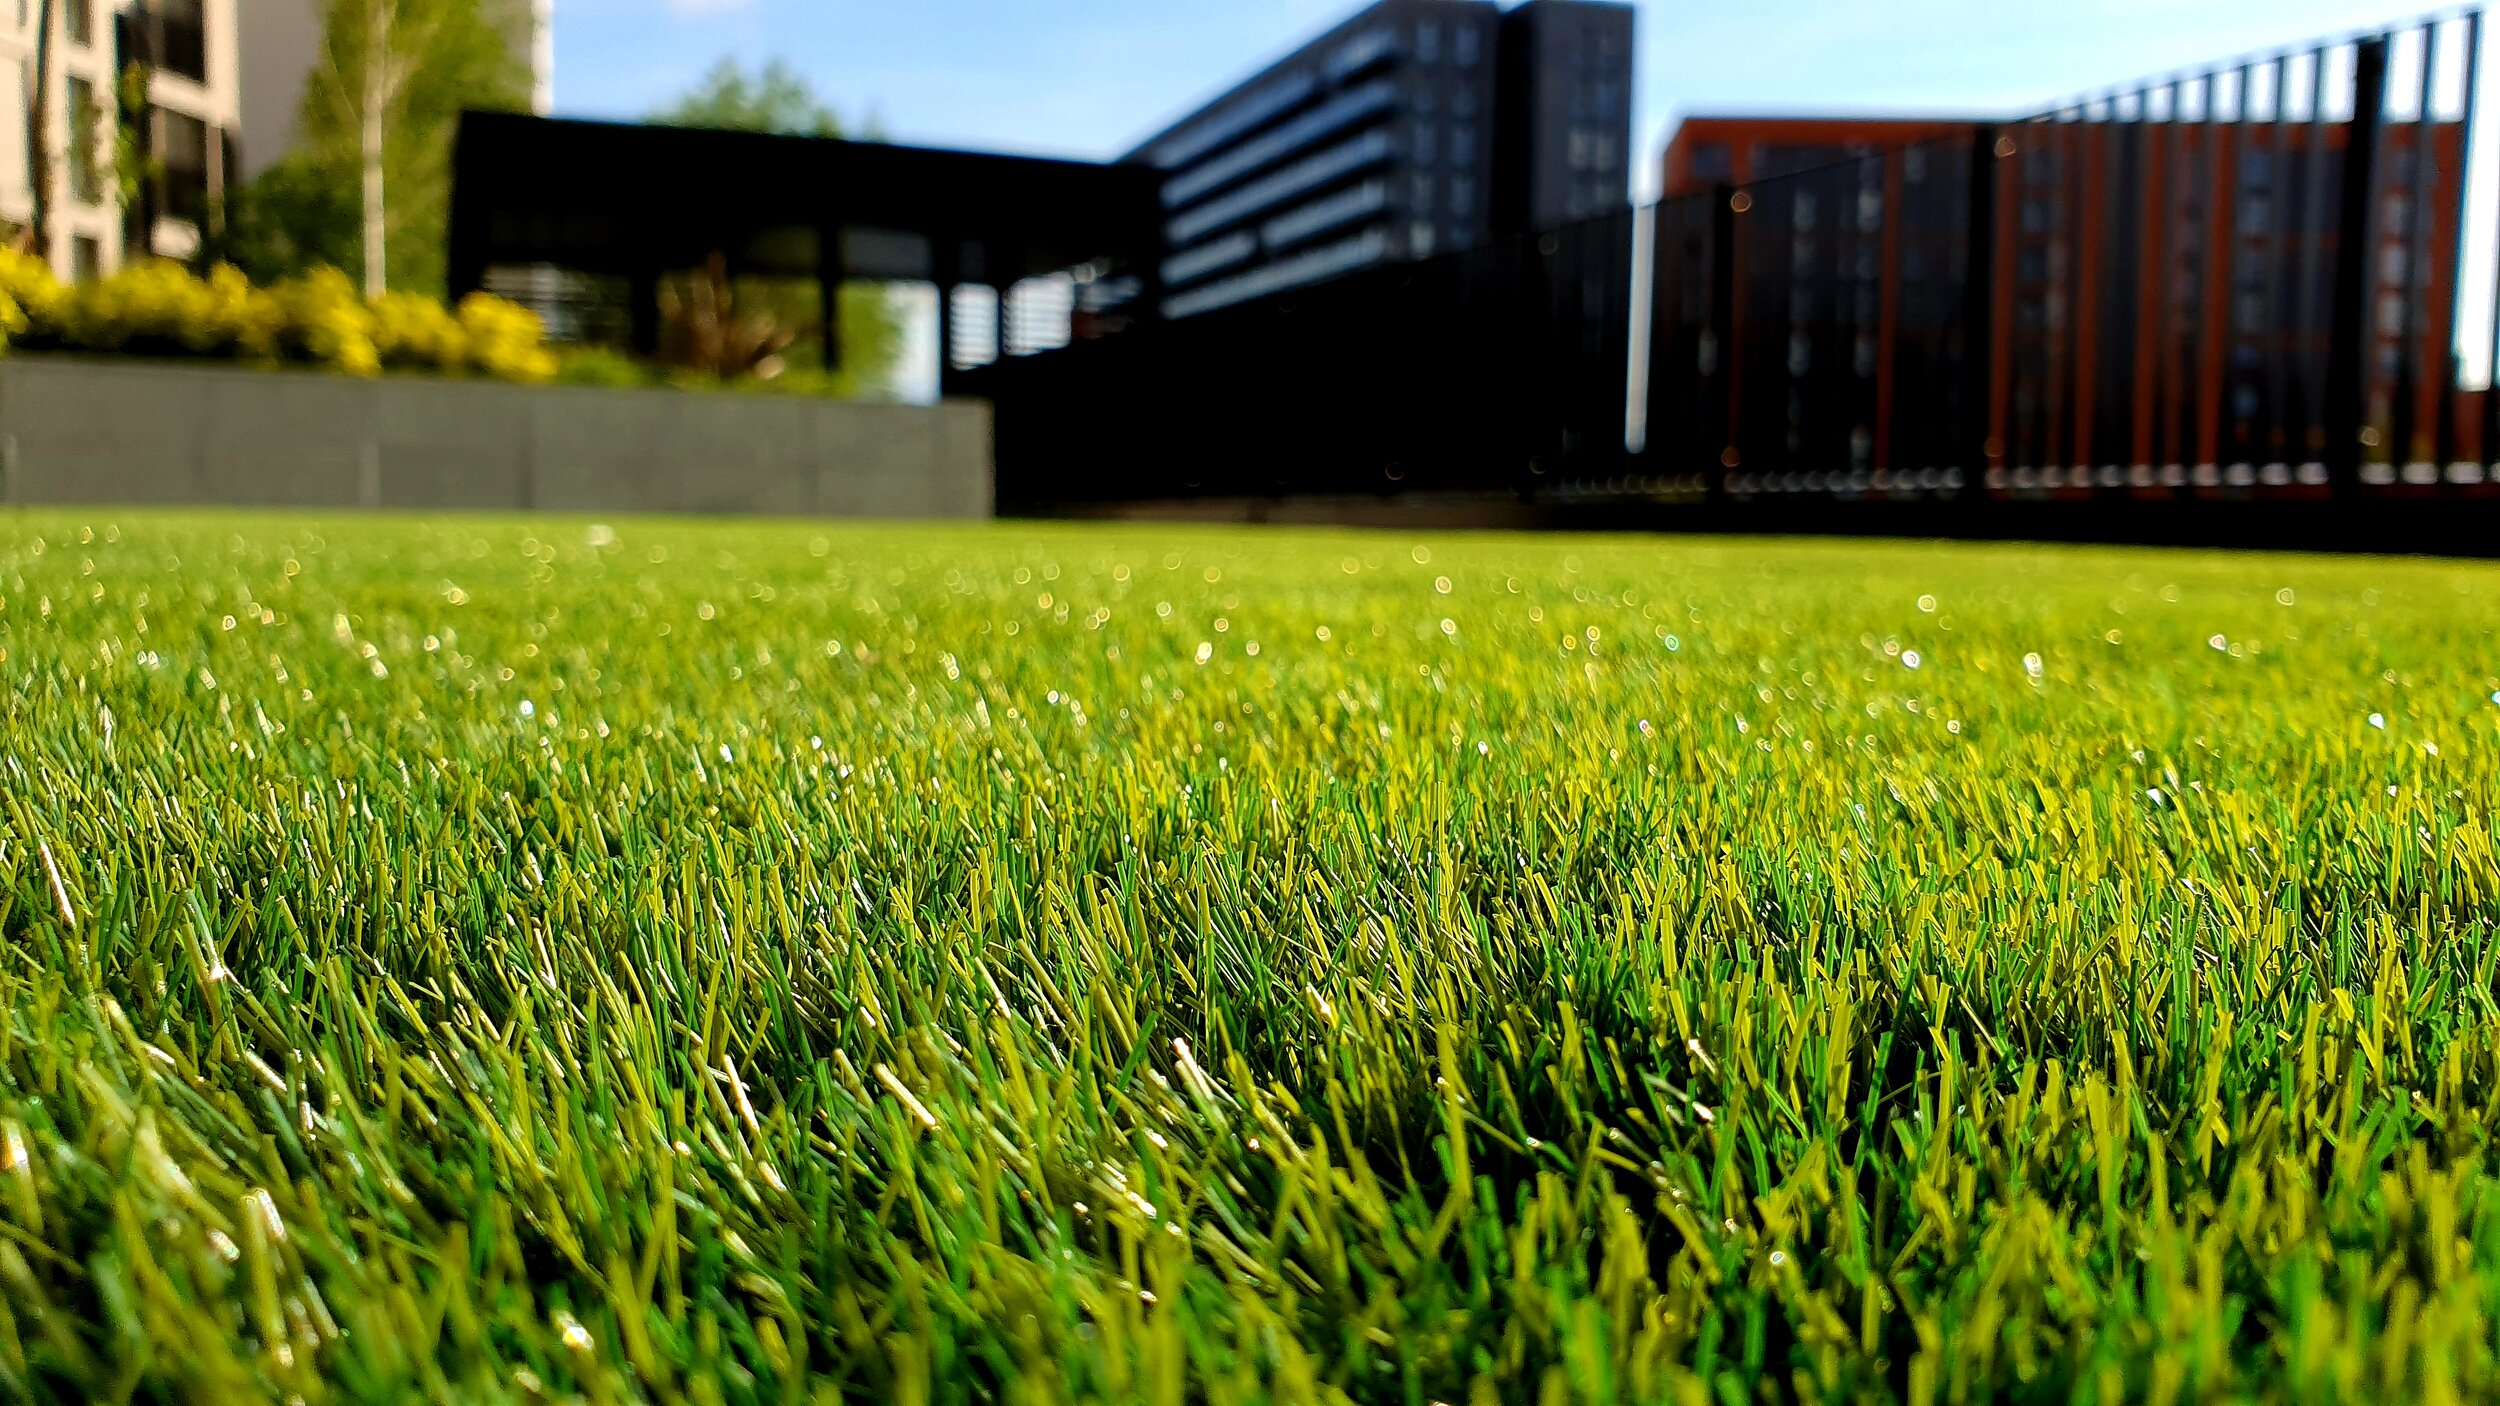 Lawn care and installation - From Kentucky Blue to Rye Grass, we do it all